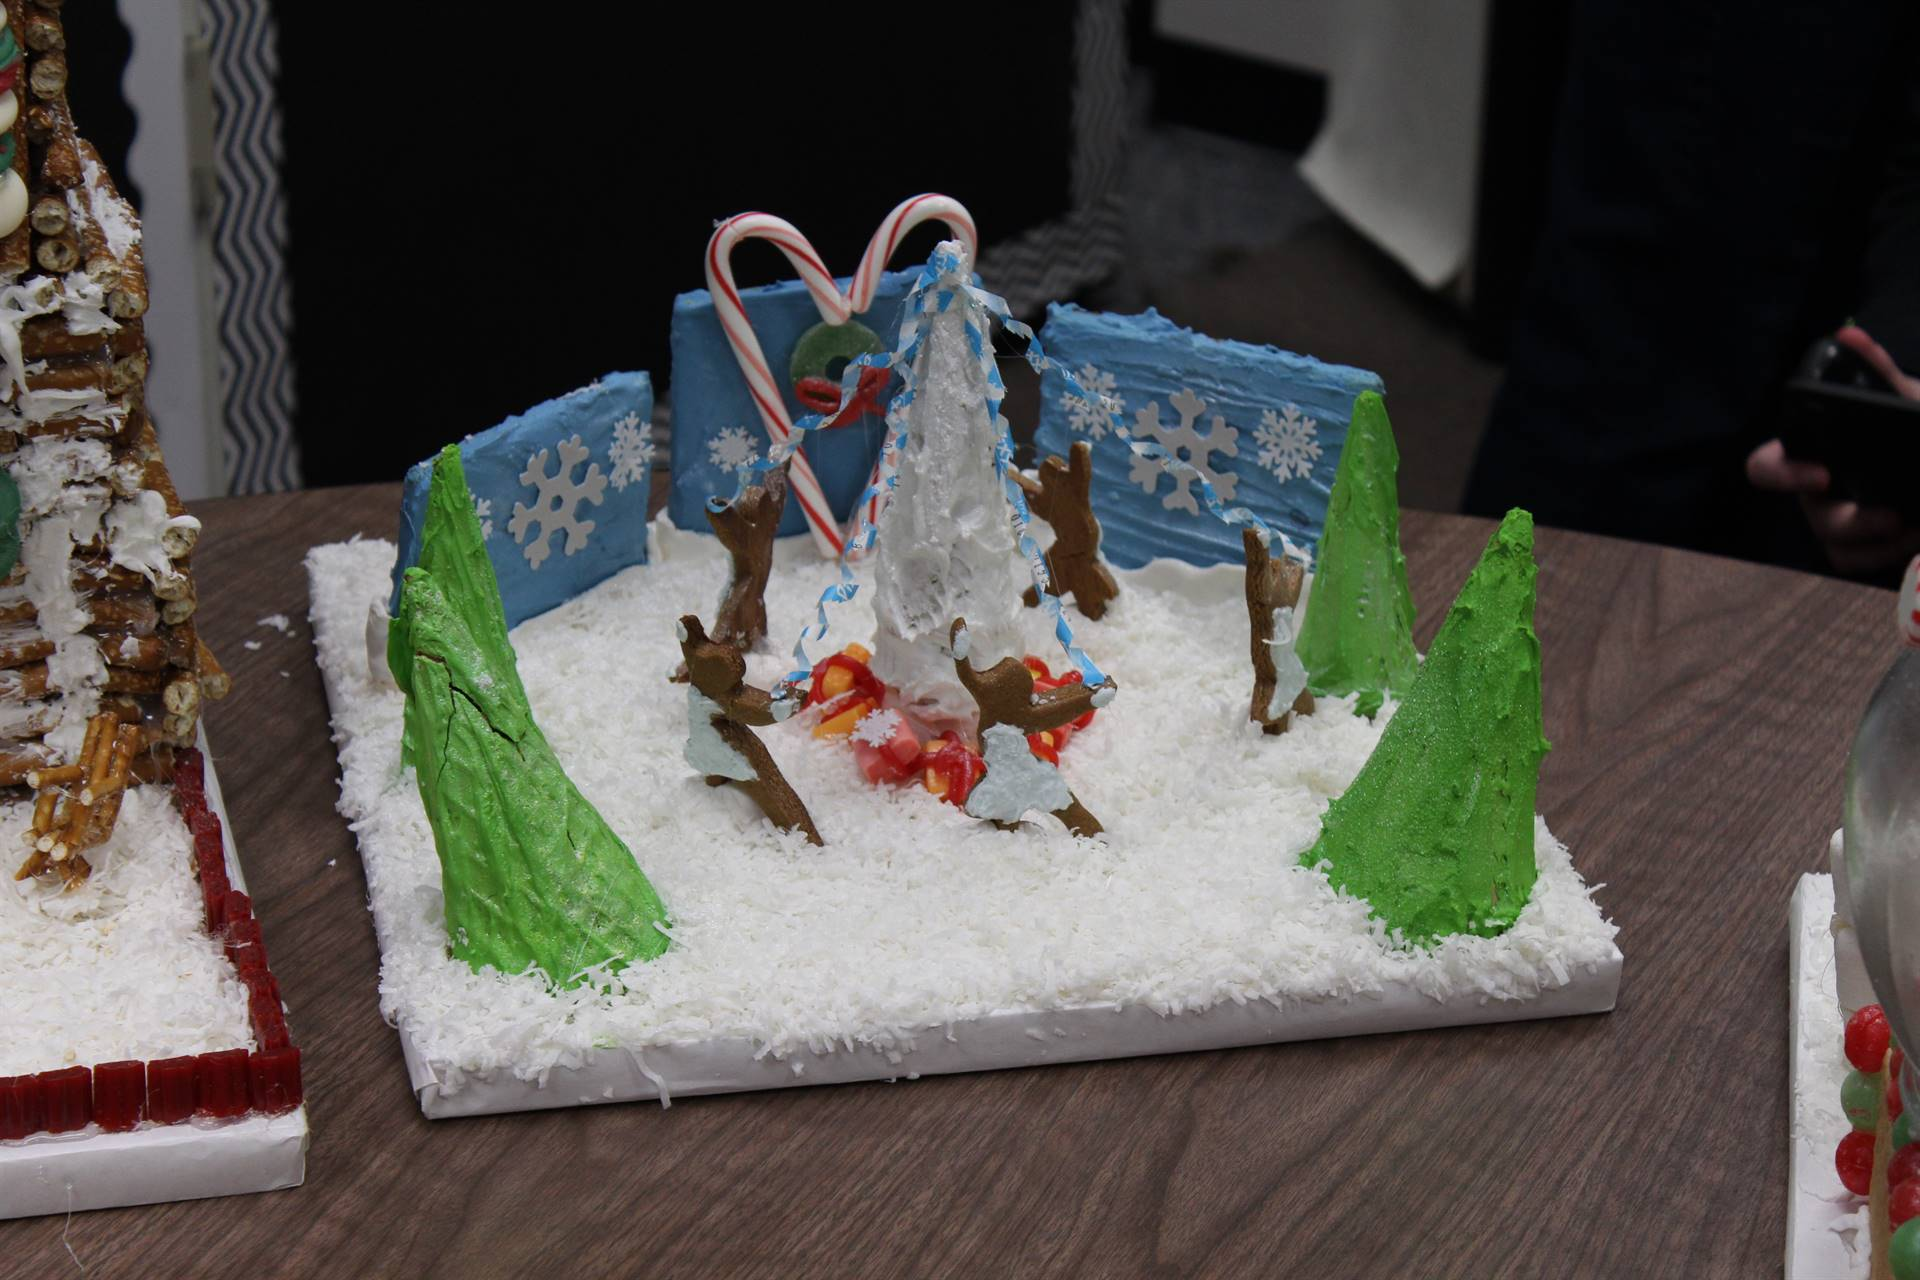 A gingerbread outdoor scene